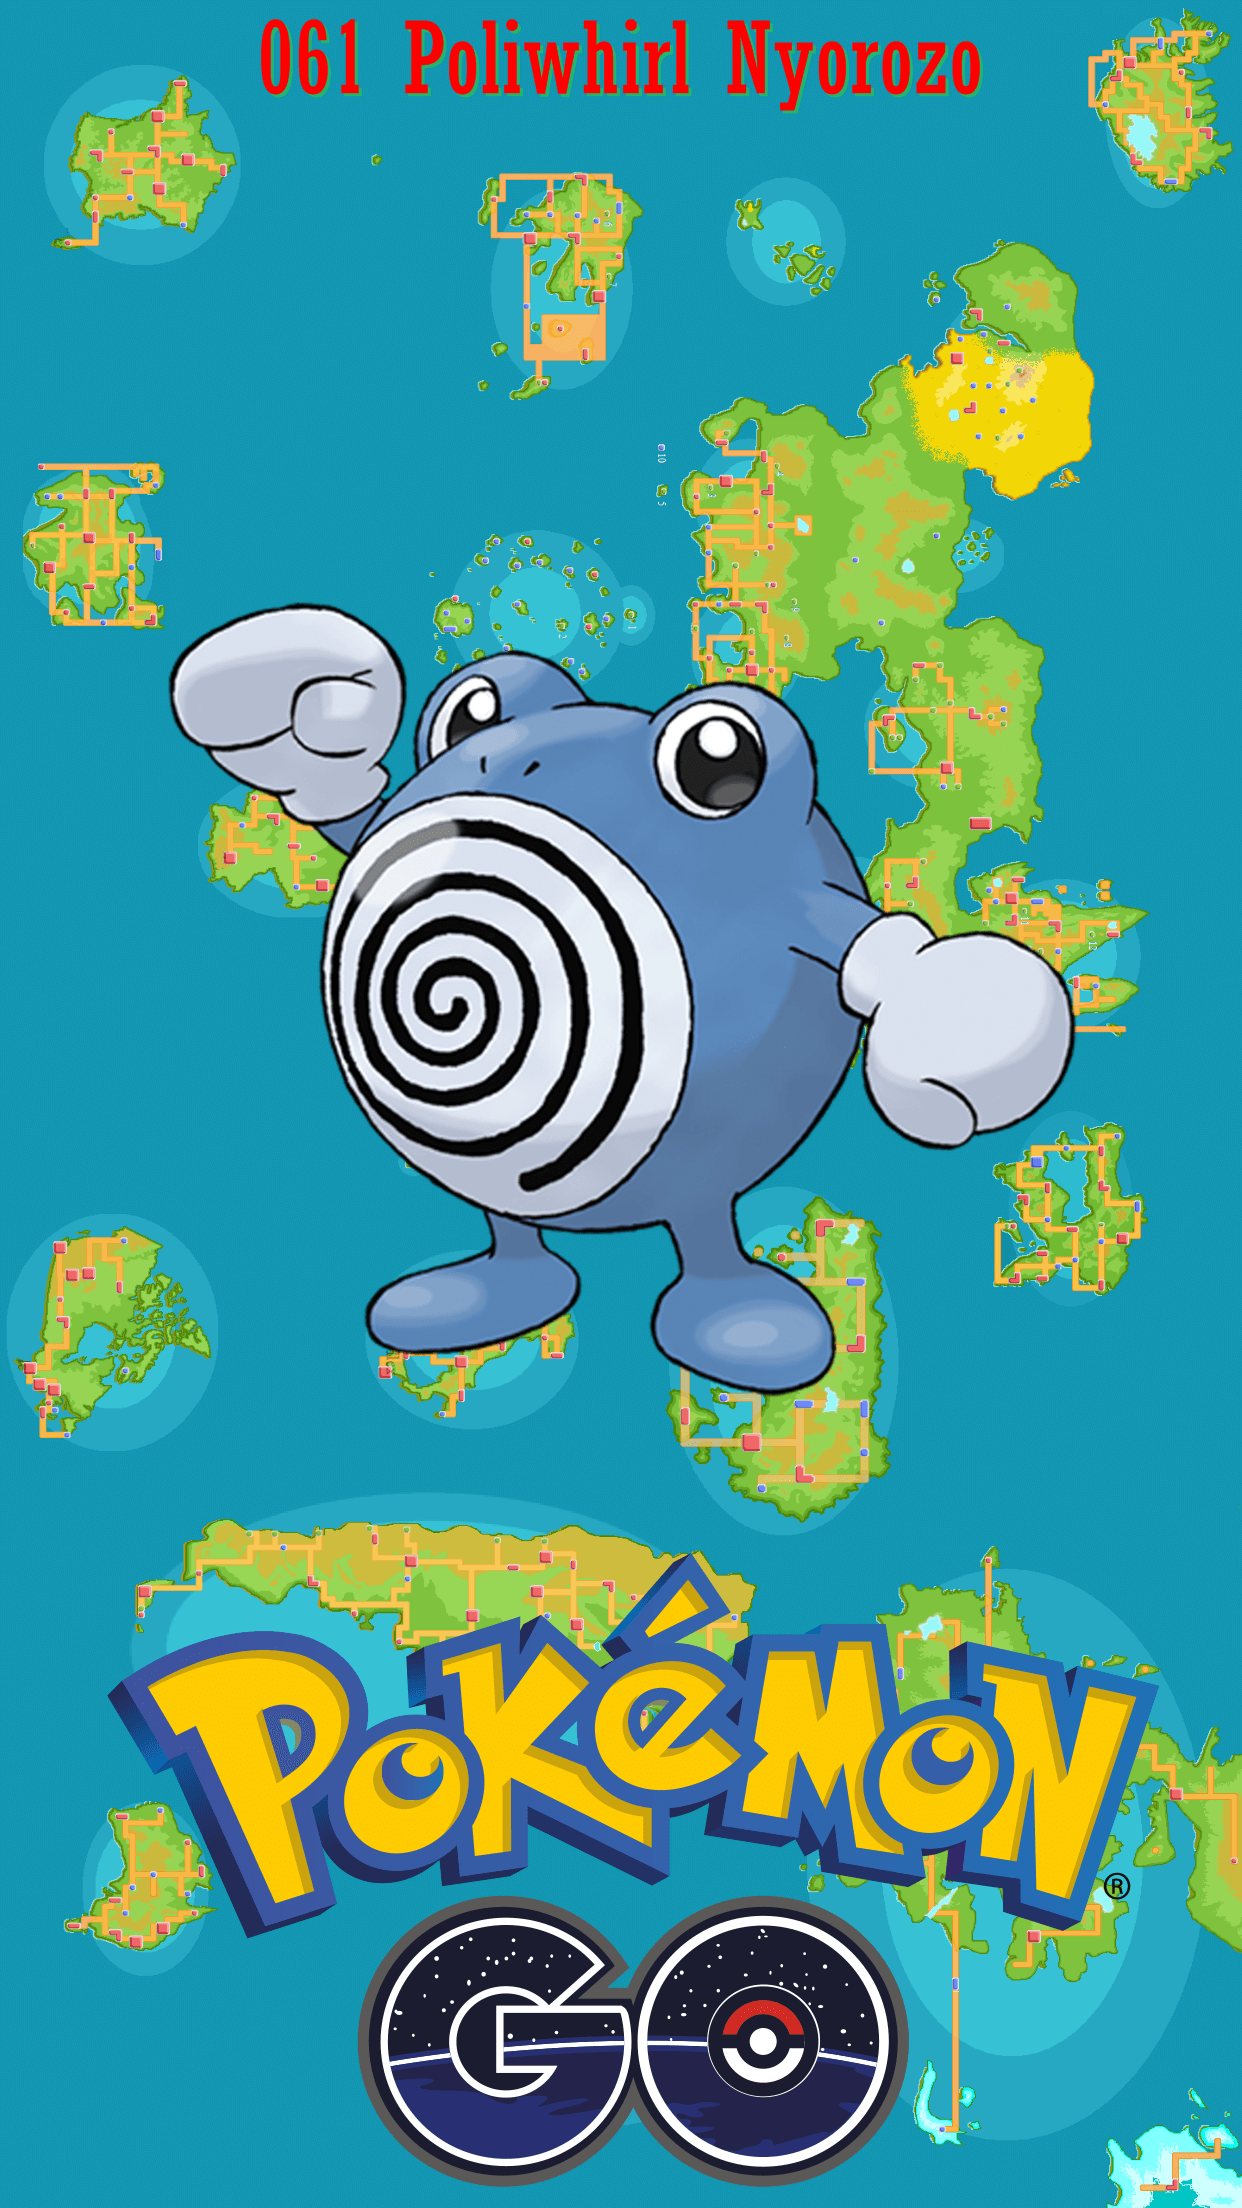 061 Street Map Poliwhirl Nyorozo | Wallpaper